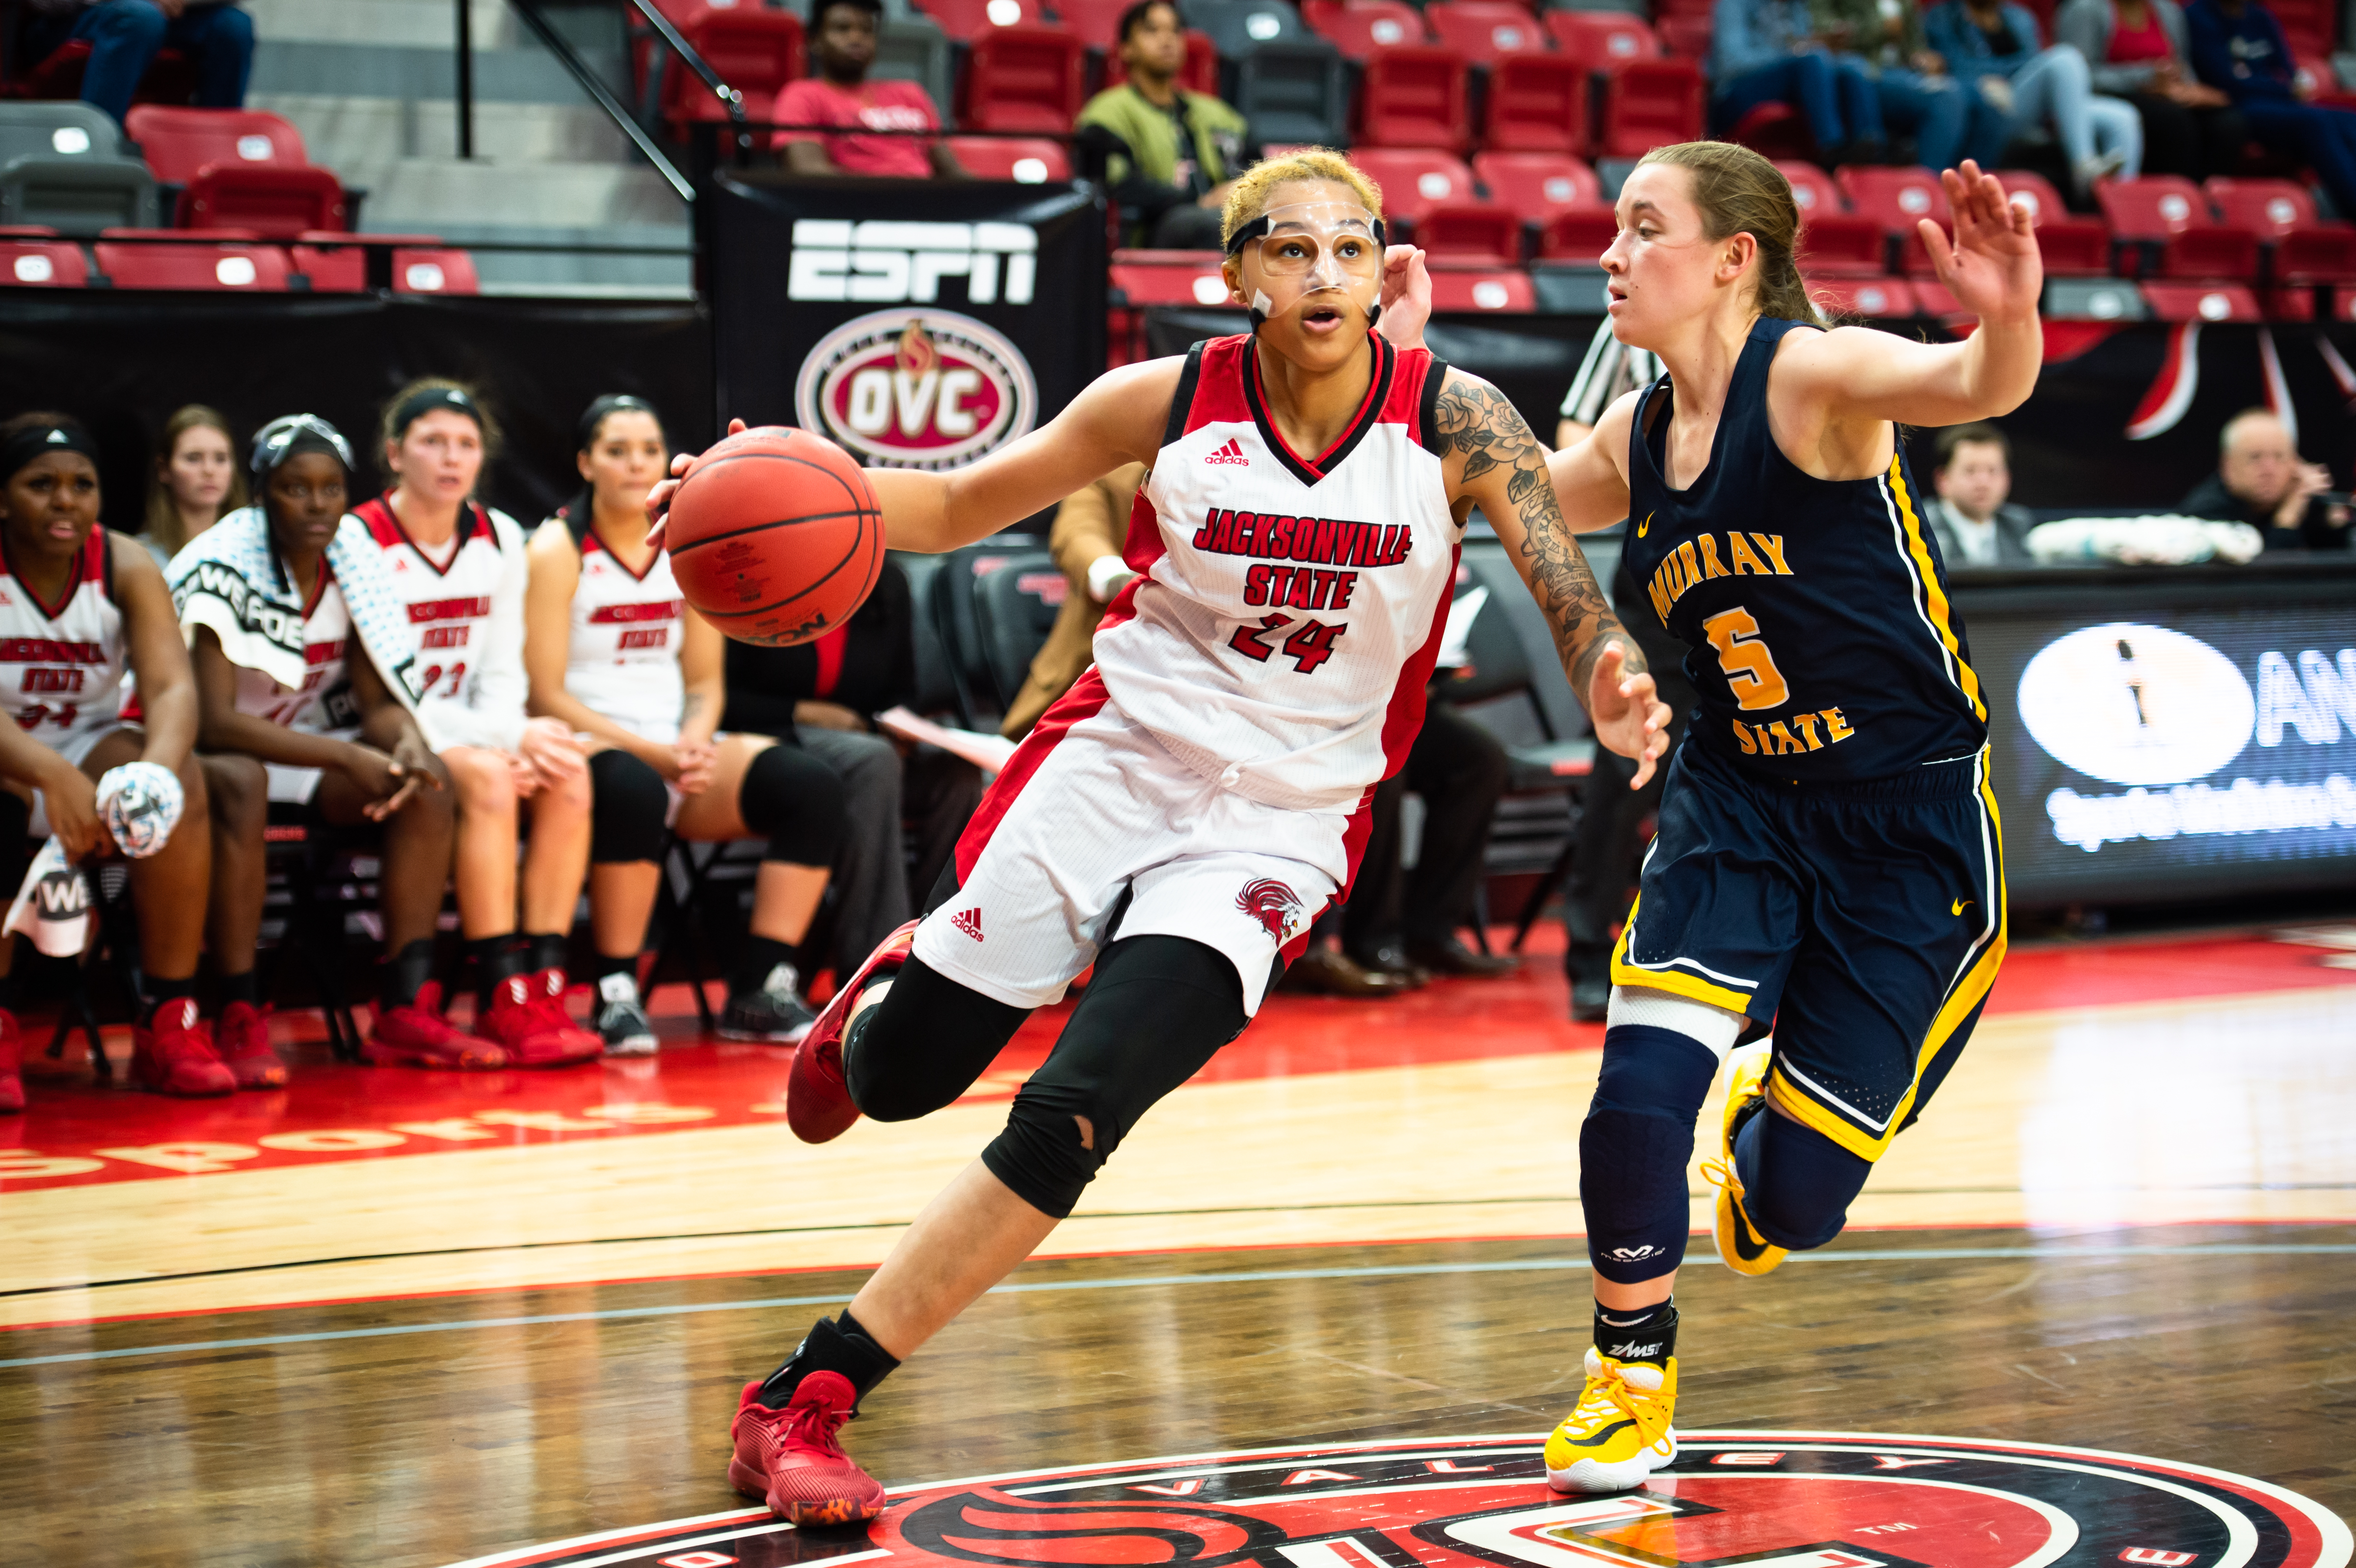 Yamia Johnson going in for a layup in a previous game against Murray State that resulted in a win for the Gamecocks with a final score of 68-51. (Courtesy of JSU)